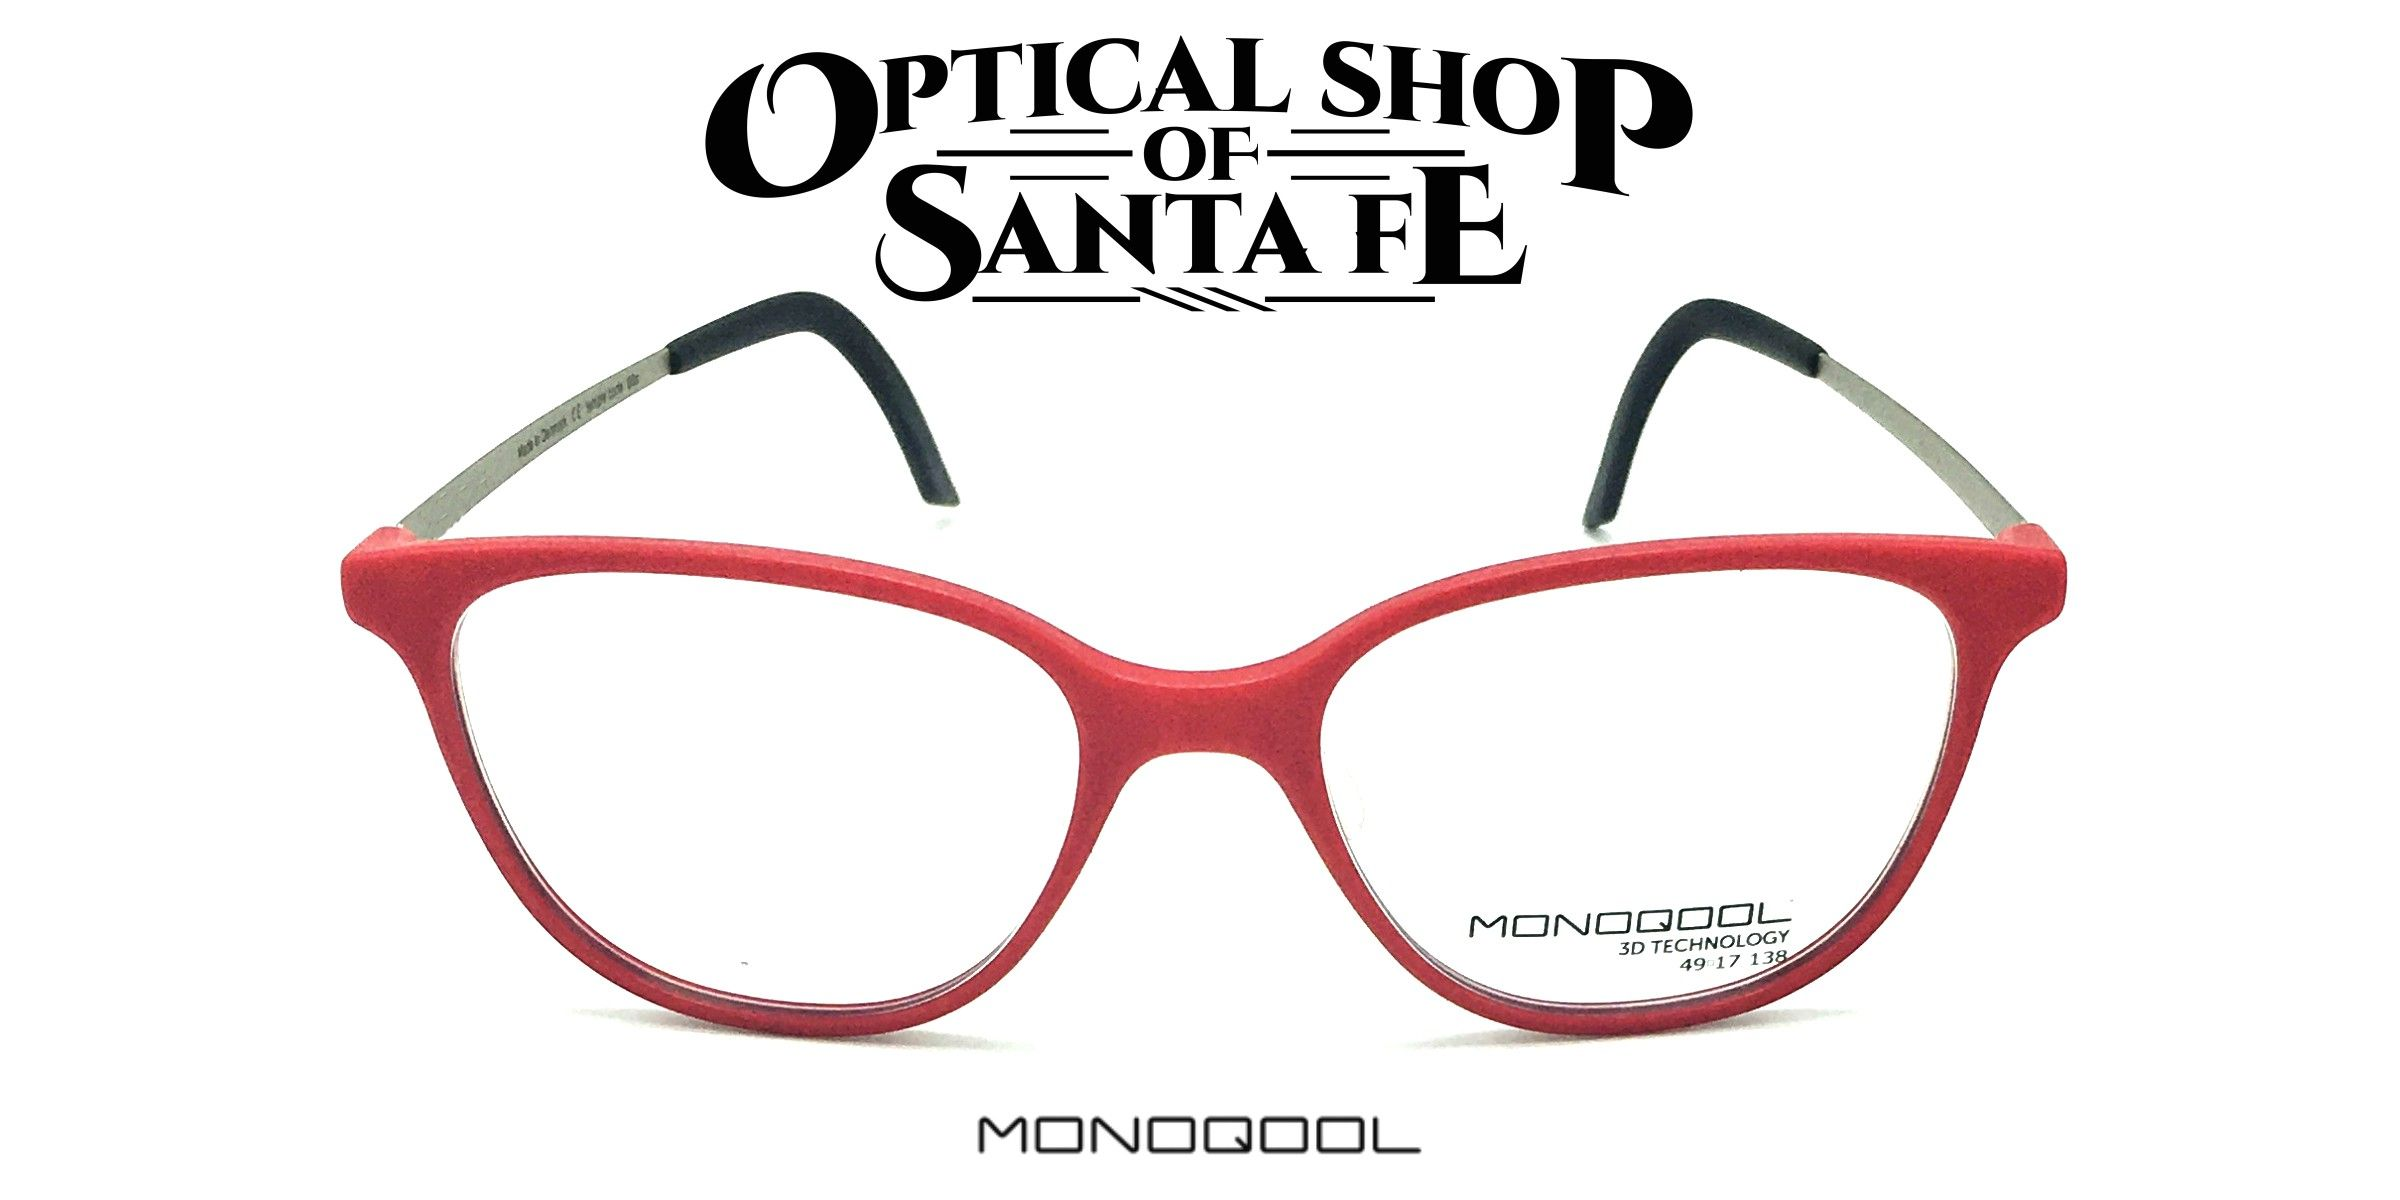 Monoqool 3D Printed Eyeglasses Eyewear - Monoqool  Optical -